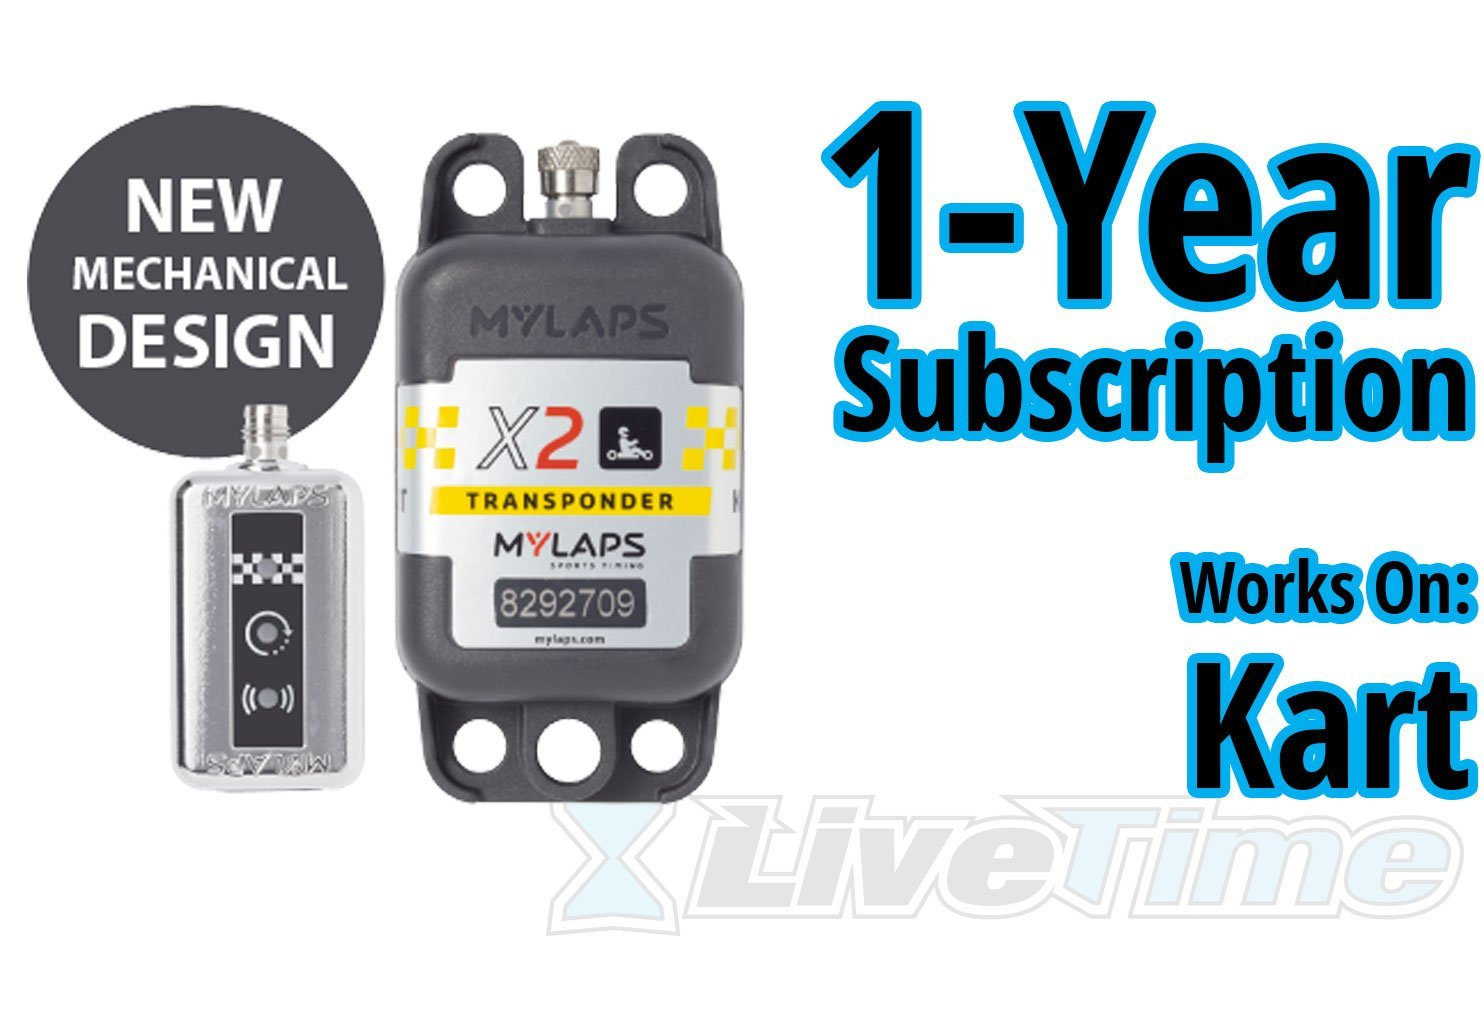 MyLaps X2 Transponder, Rechargeable, for Karting, includes 1-Year Subscription